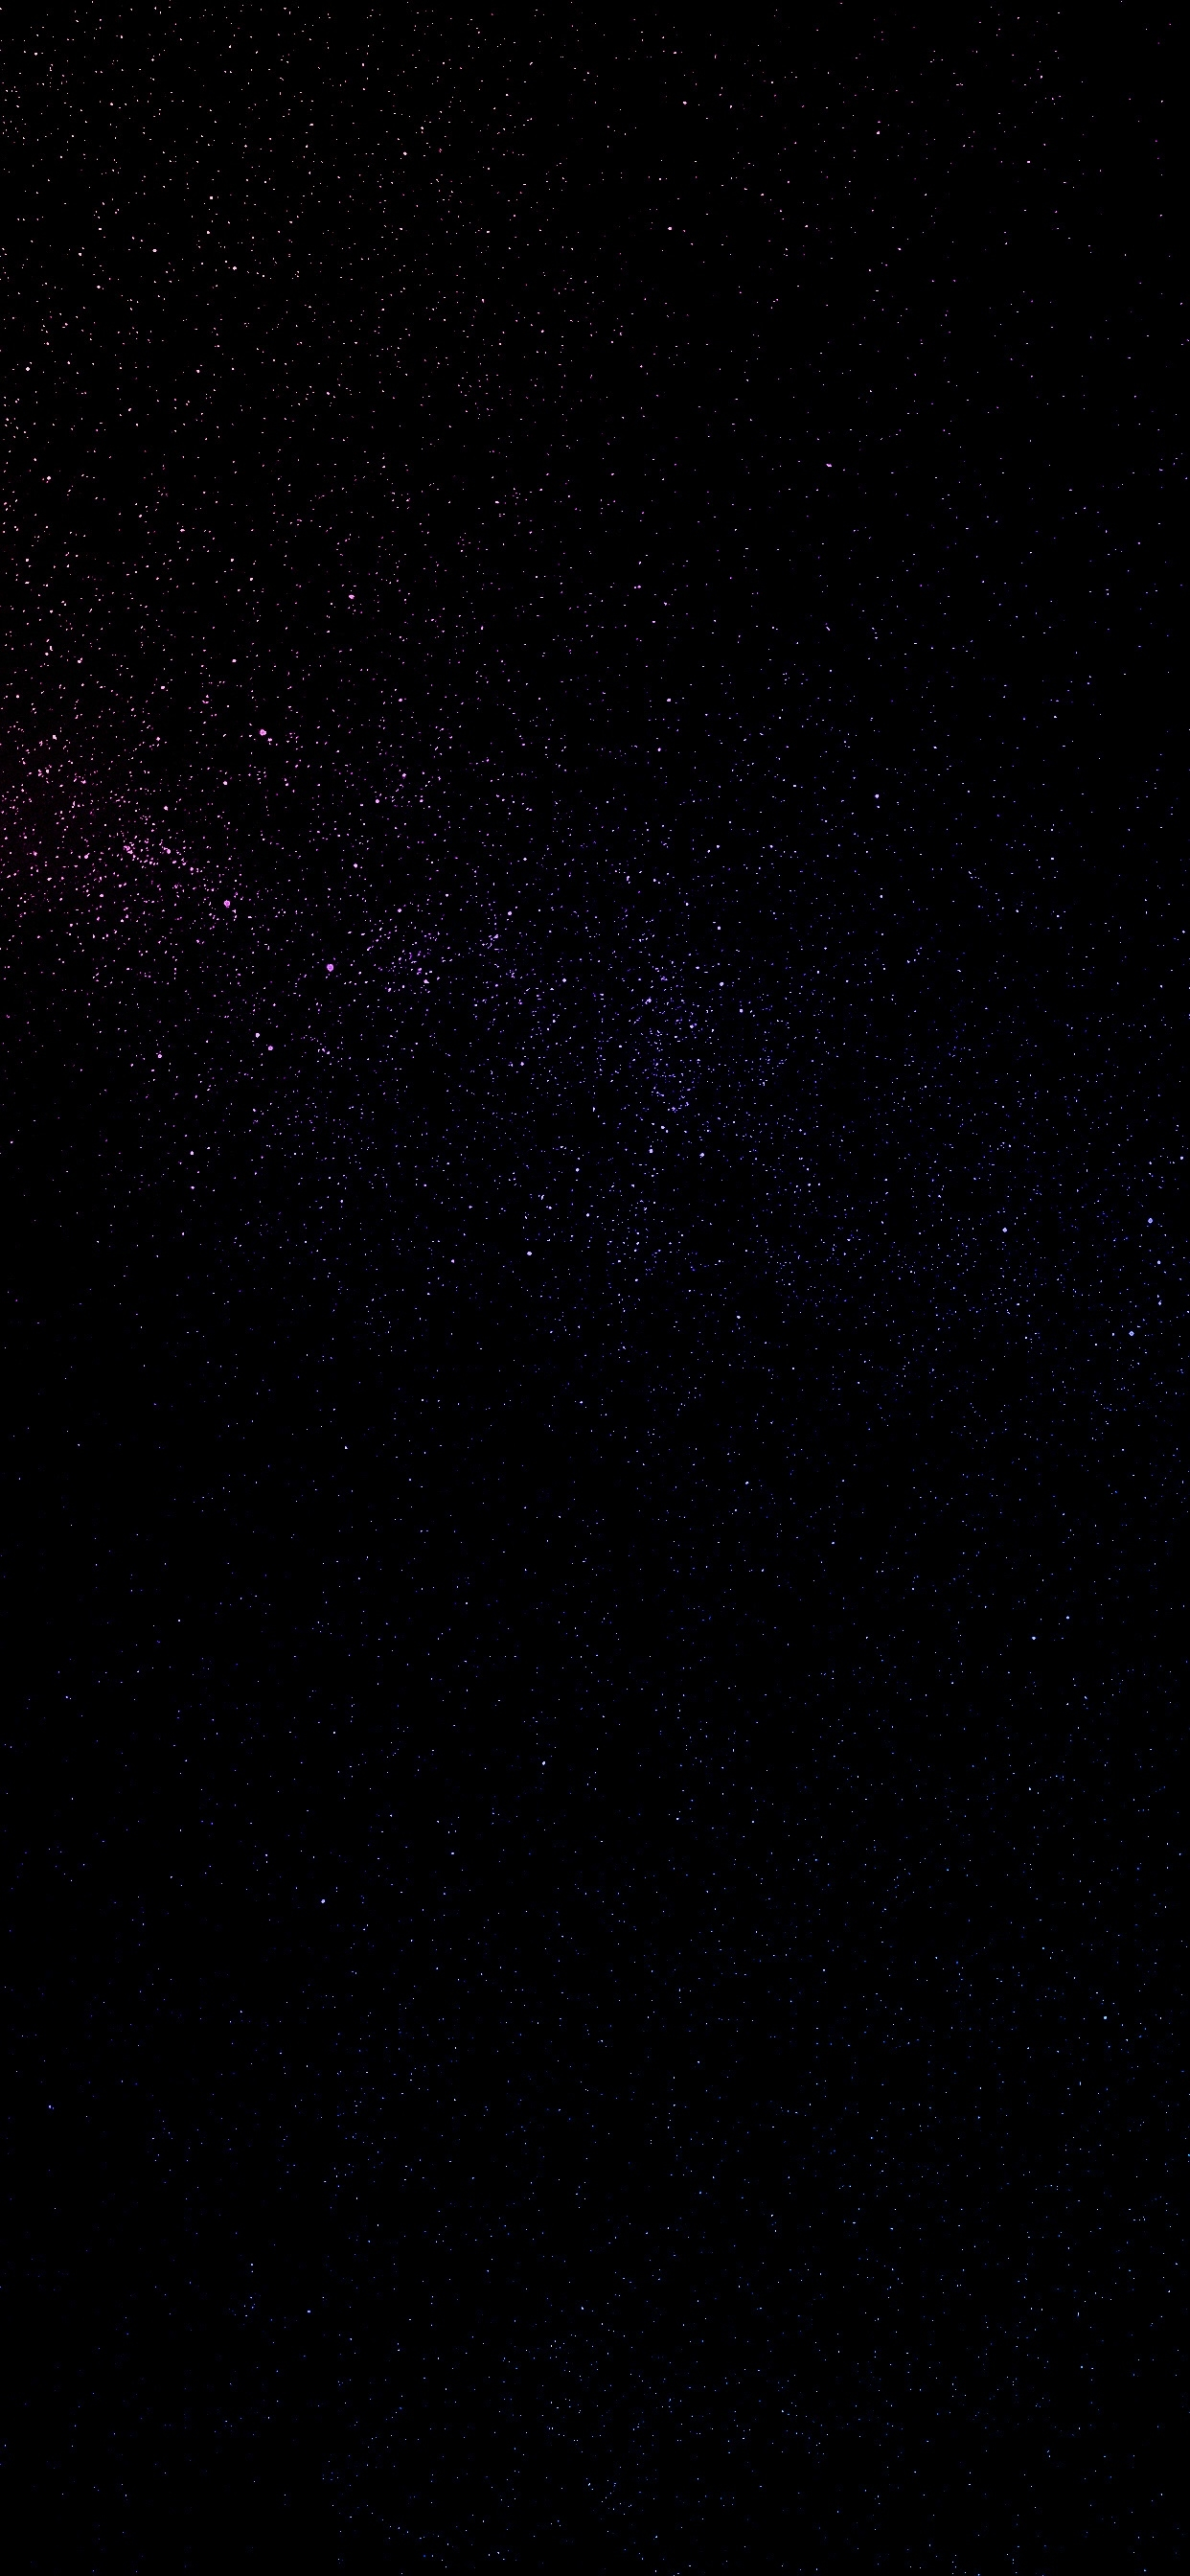 galaxy wallpaper iPhone ar72014 3